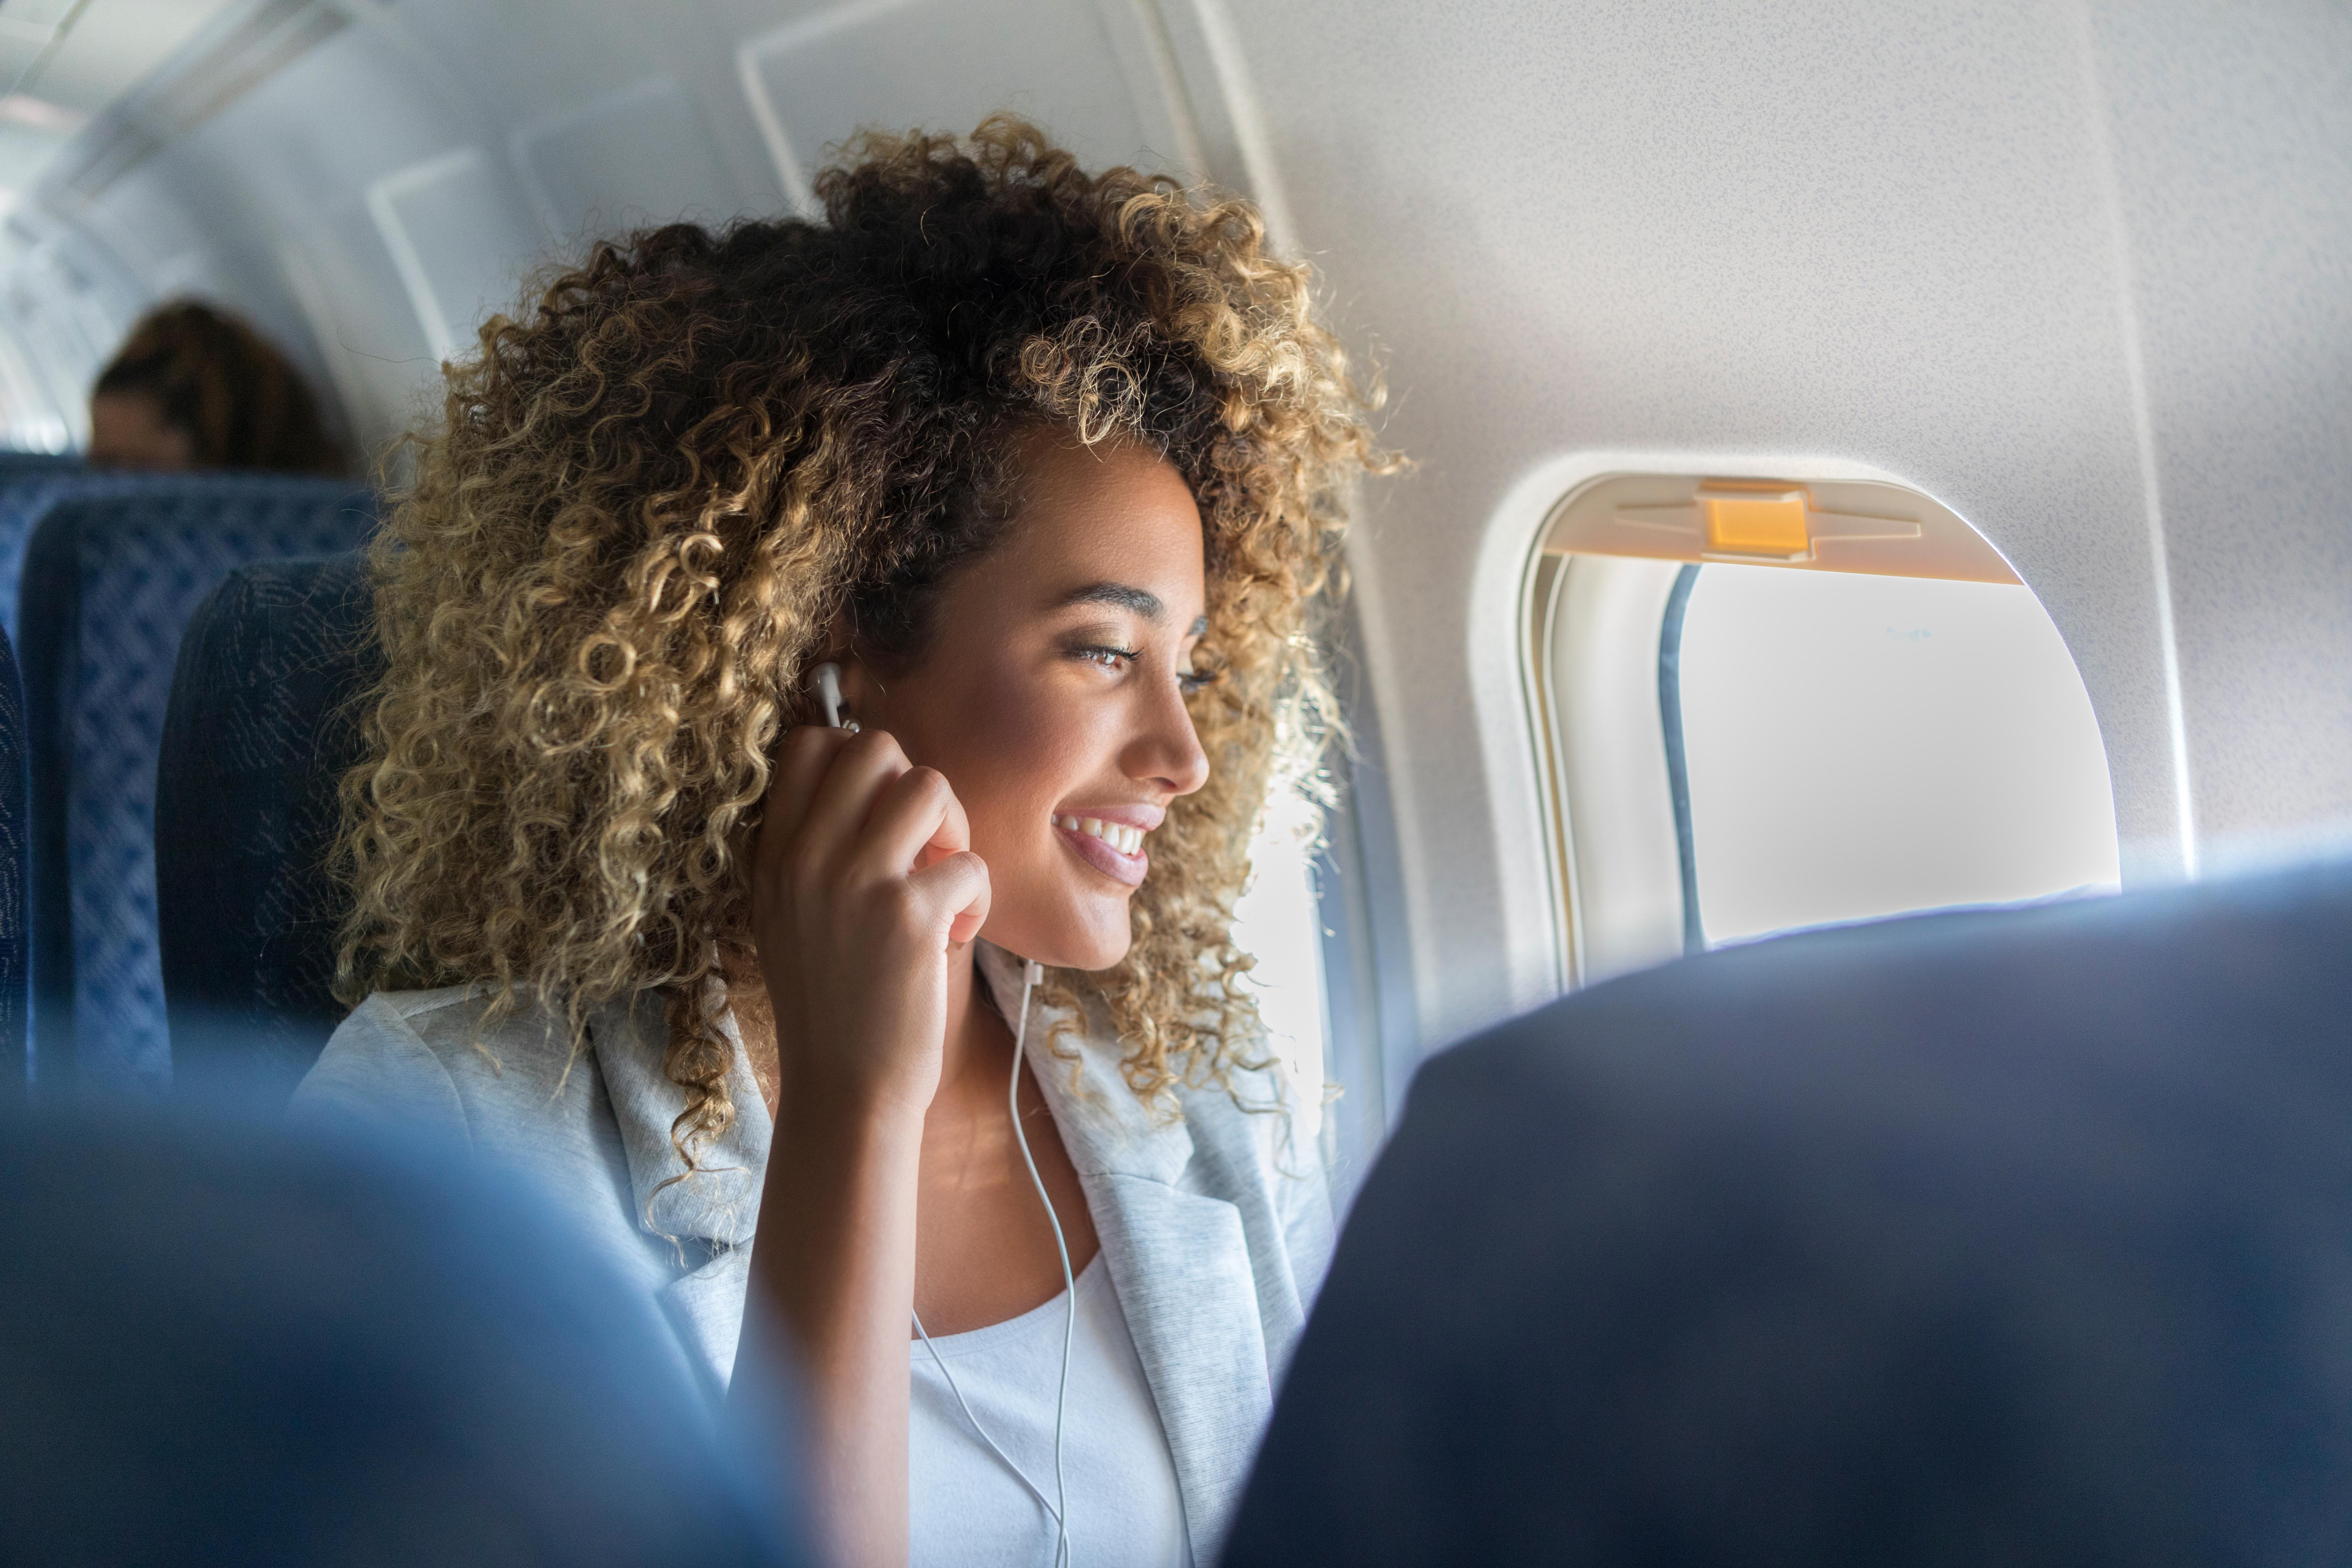 Seven Ways to Take a Healthier Flight